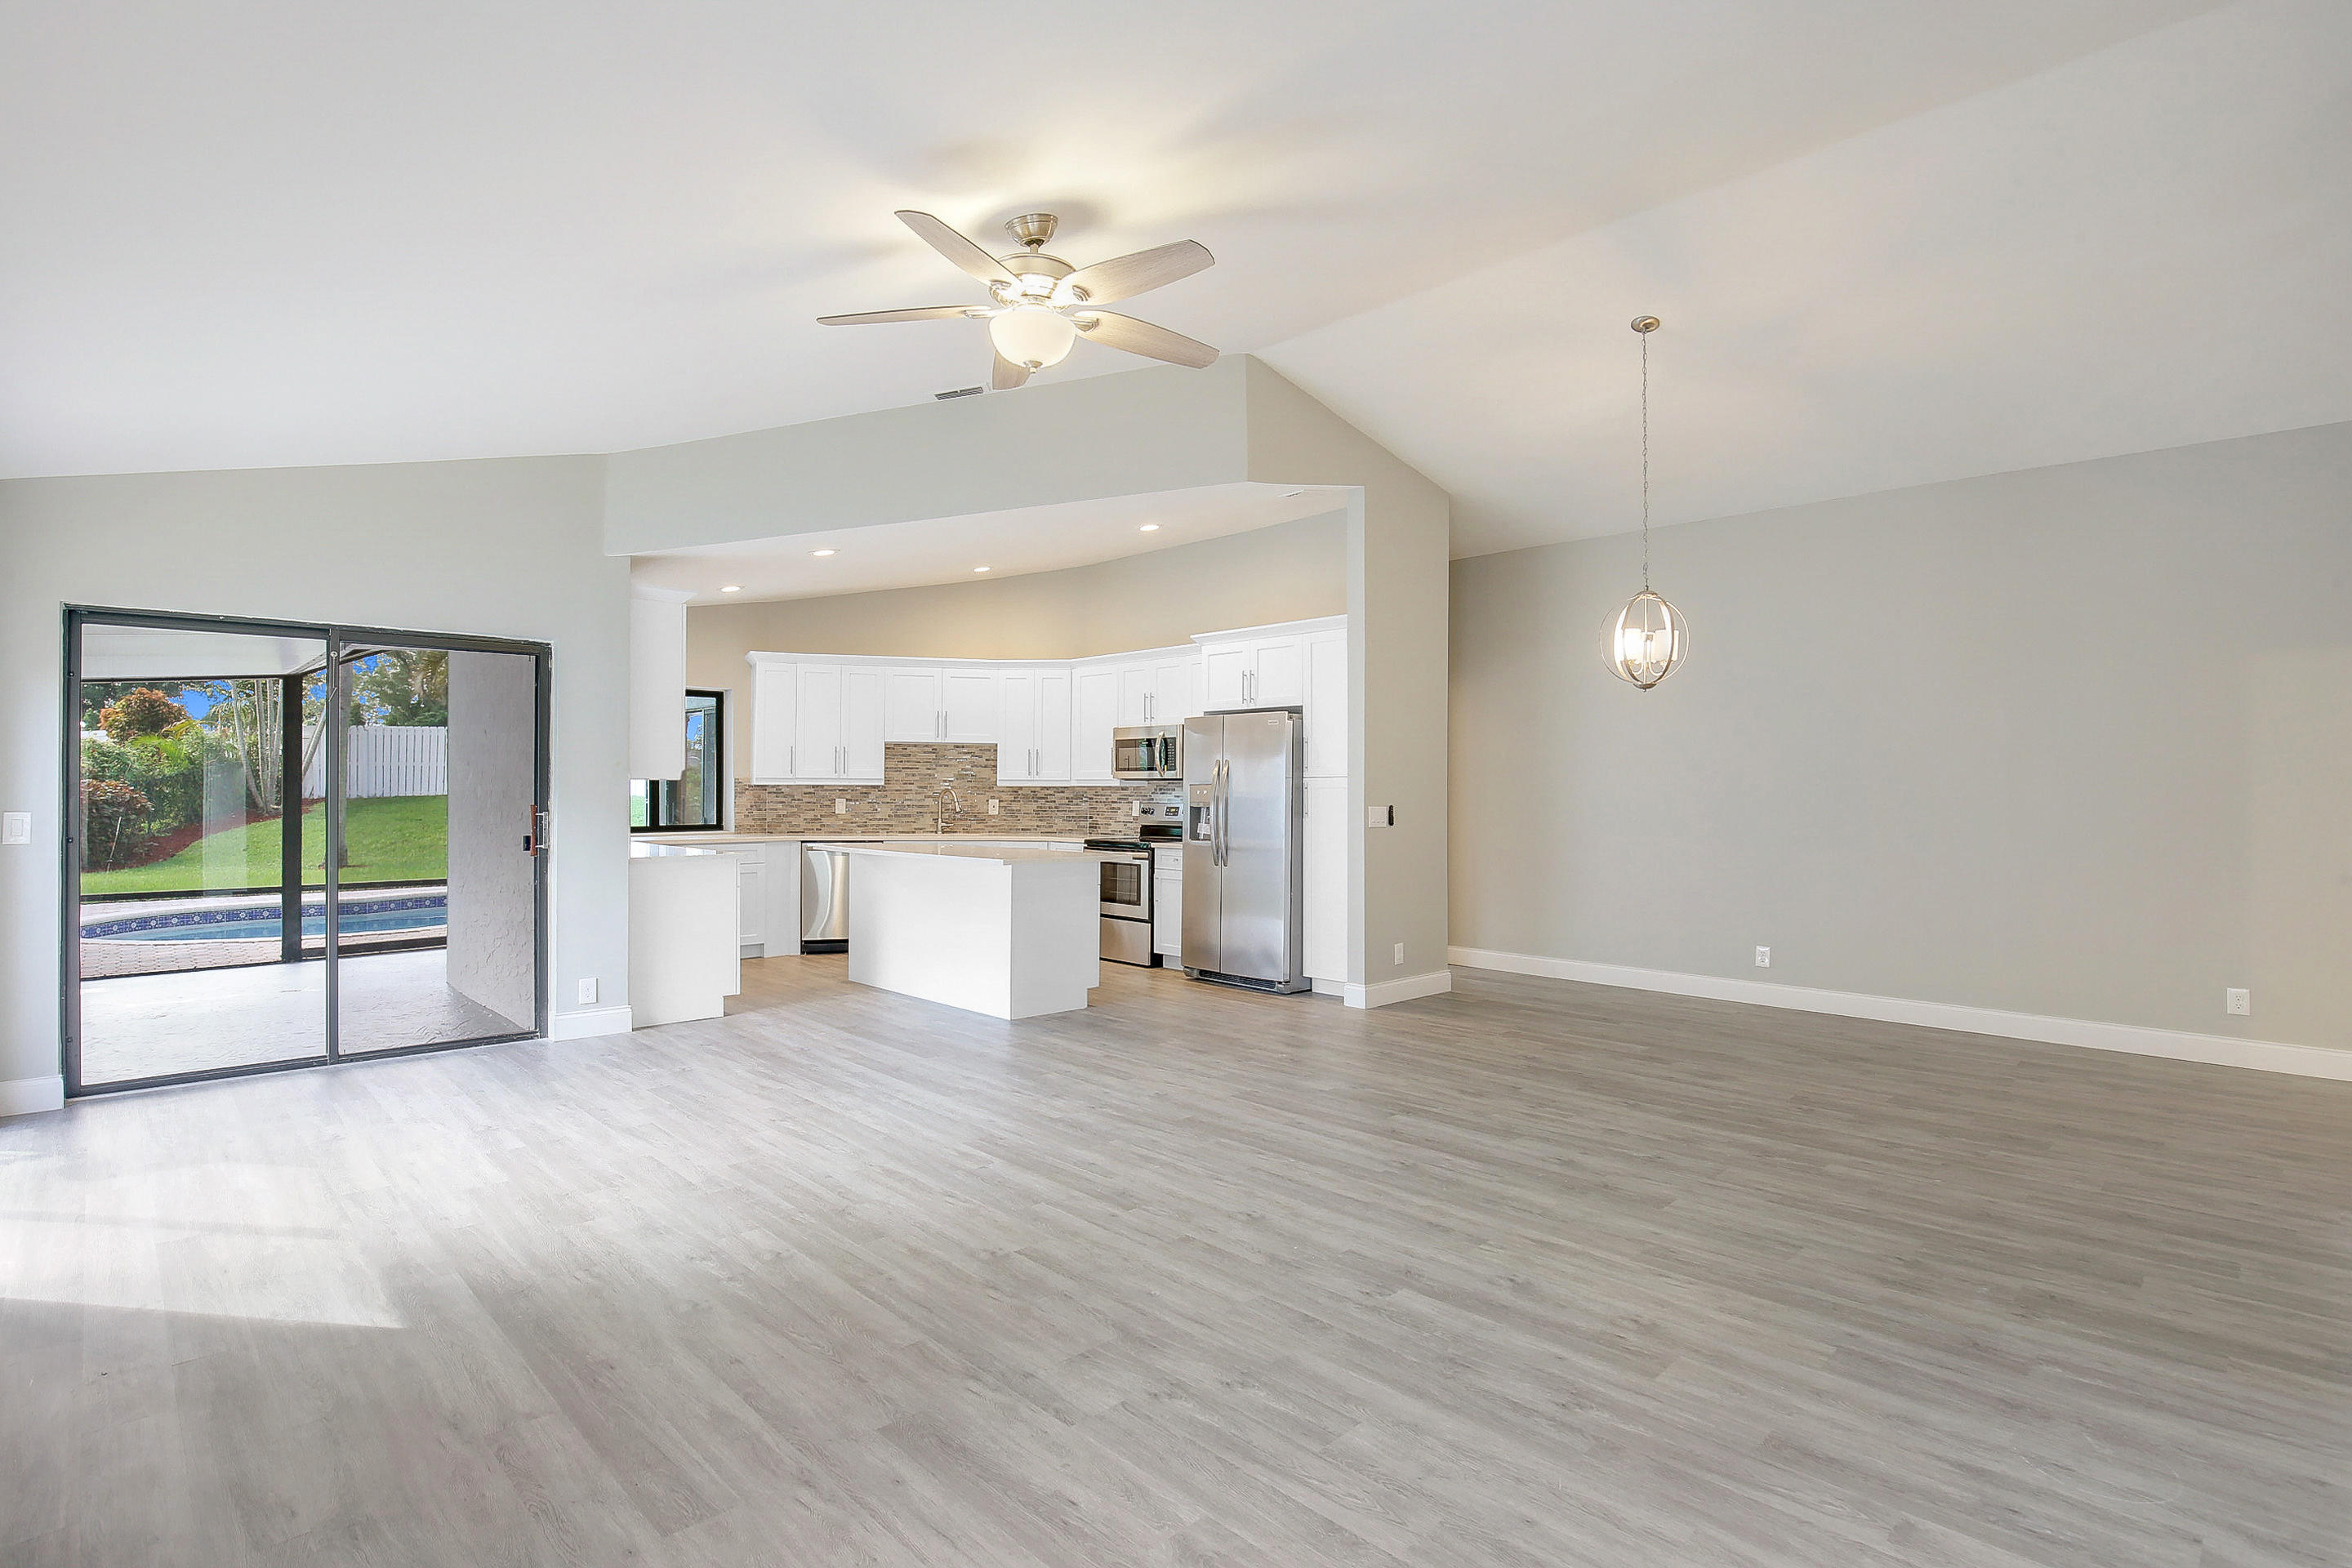 PELICAN HARBOR HOMES FOR SALE